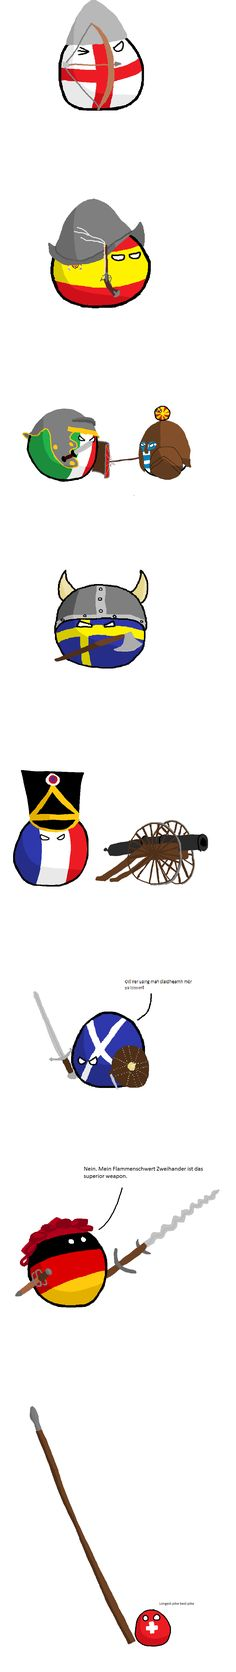 Trademark European Weaponry ( England, Spain, Italy, Greece, Macedonia, Sweden, France, Scotland, Germany, Switzerland ) by Kim Jong Unusual #polandball #countryball